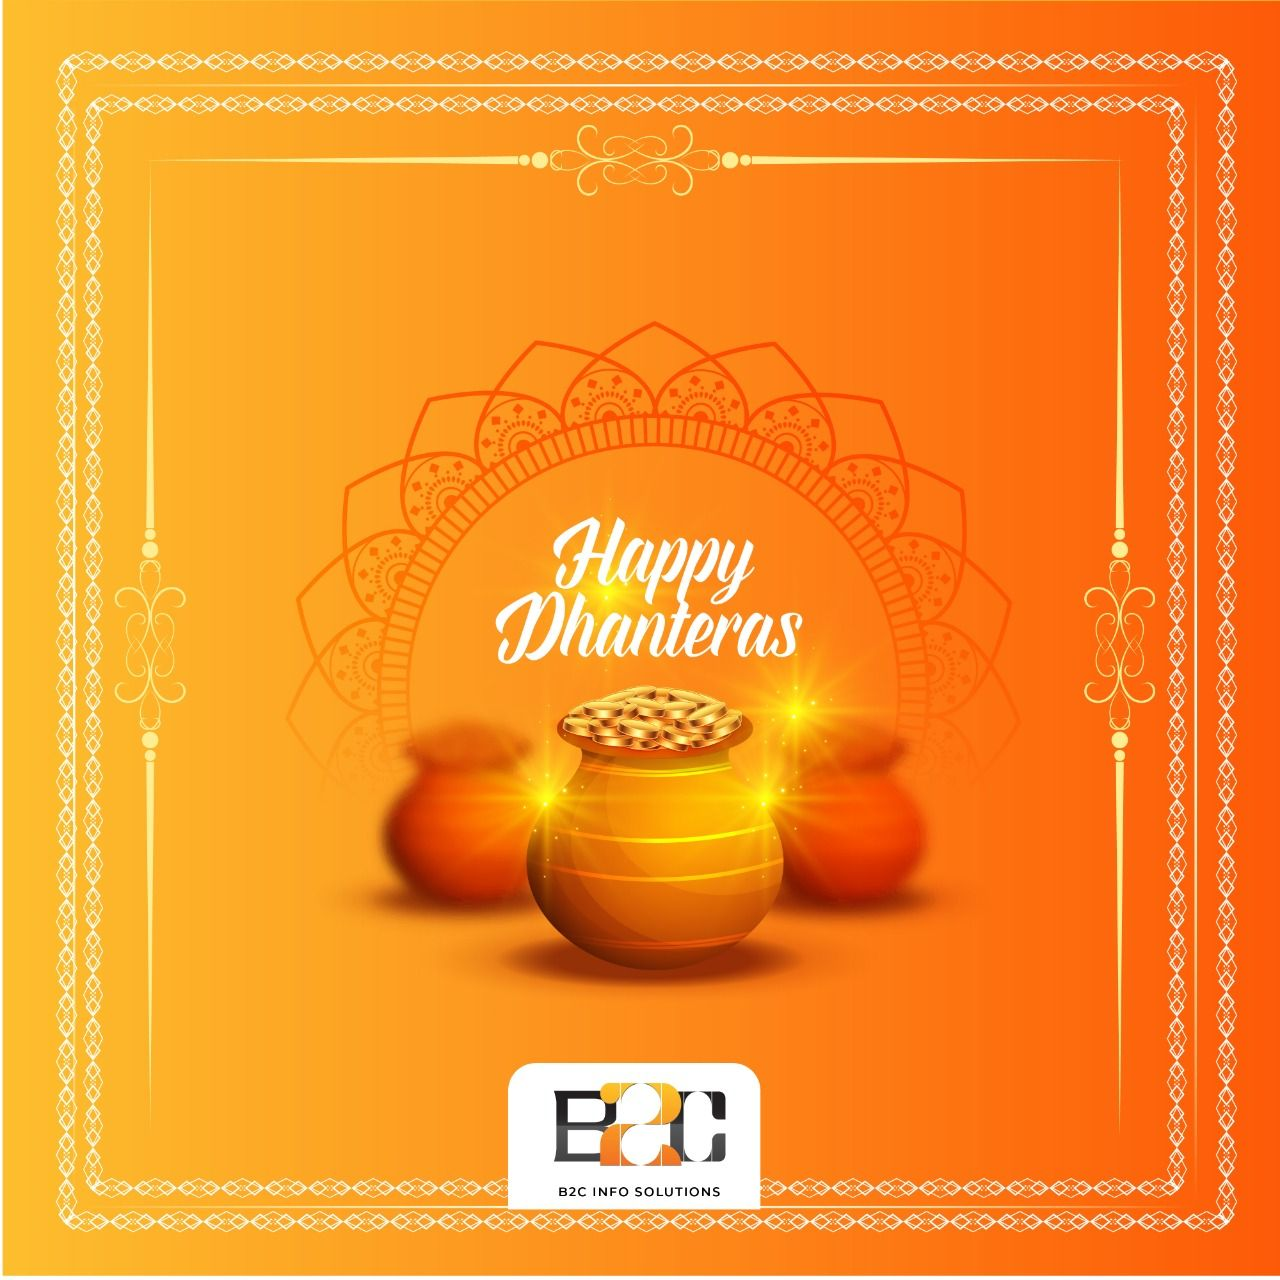 The whole team of B2C Info Solutions wishes you a very Happy Dhanteras. May this Dhanteras Celebrations endow you with opulence and prosperity. . #happyDhanteras #Dhanteras #india #festival #celebration #b2cInfoSolutions #festivals  #indianfestivals #Dhanteras2019 #laxmipujan #dhanteraPooja #dhanteraswishes